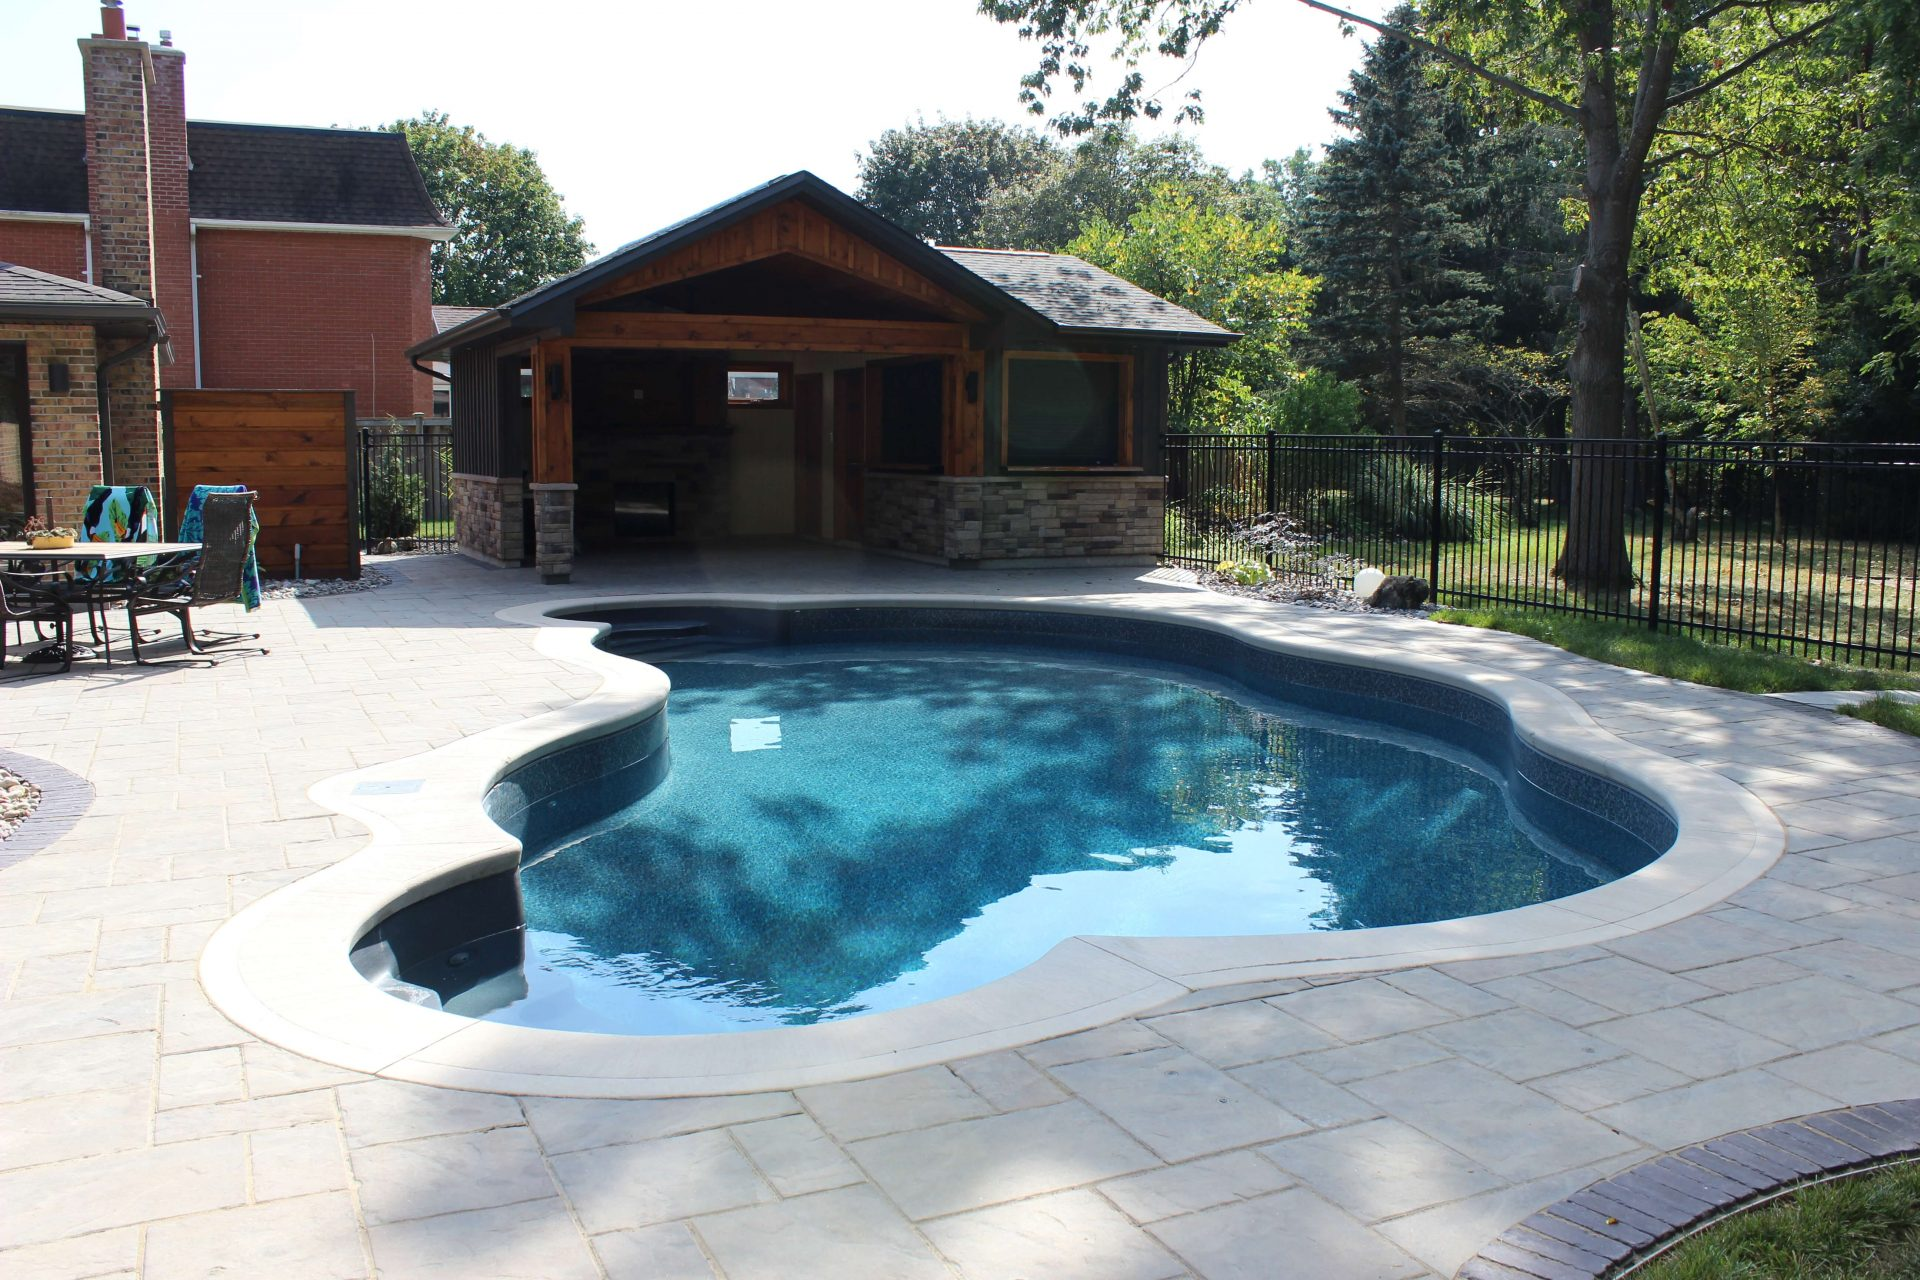 Modern pool house in front of small underground pool